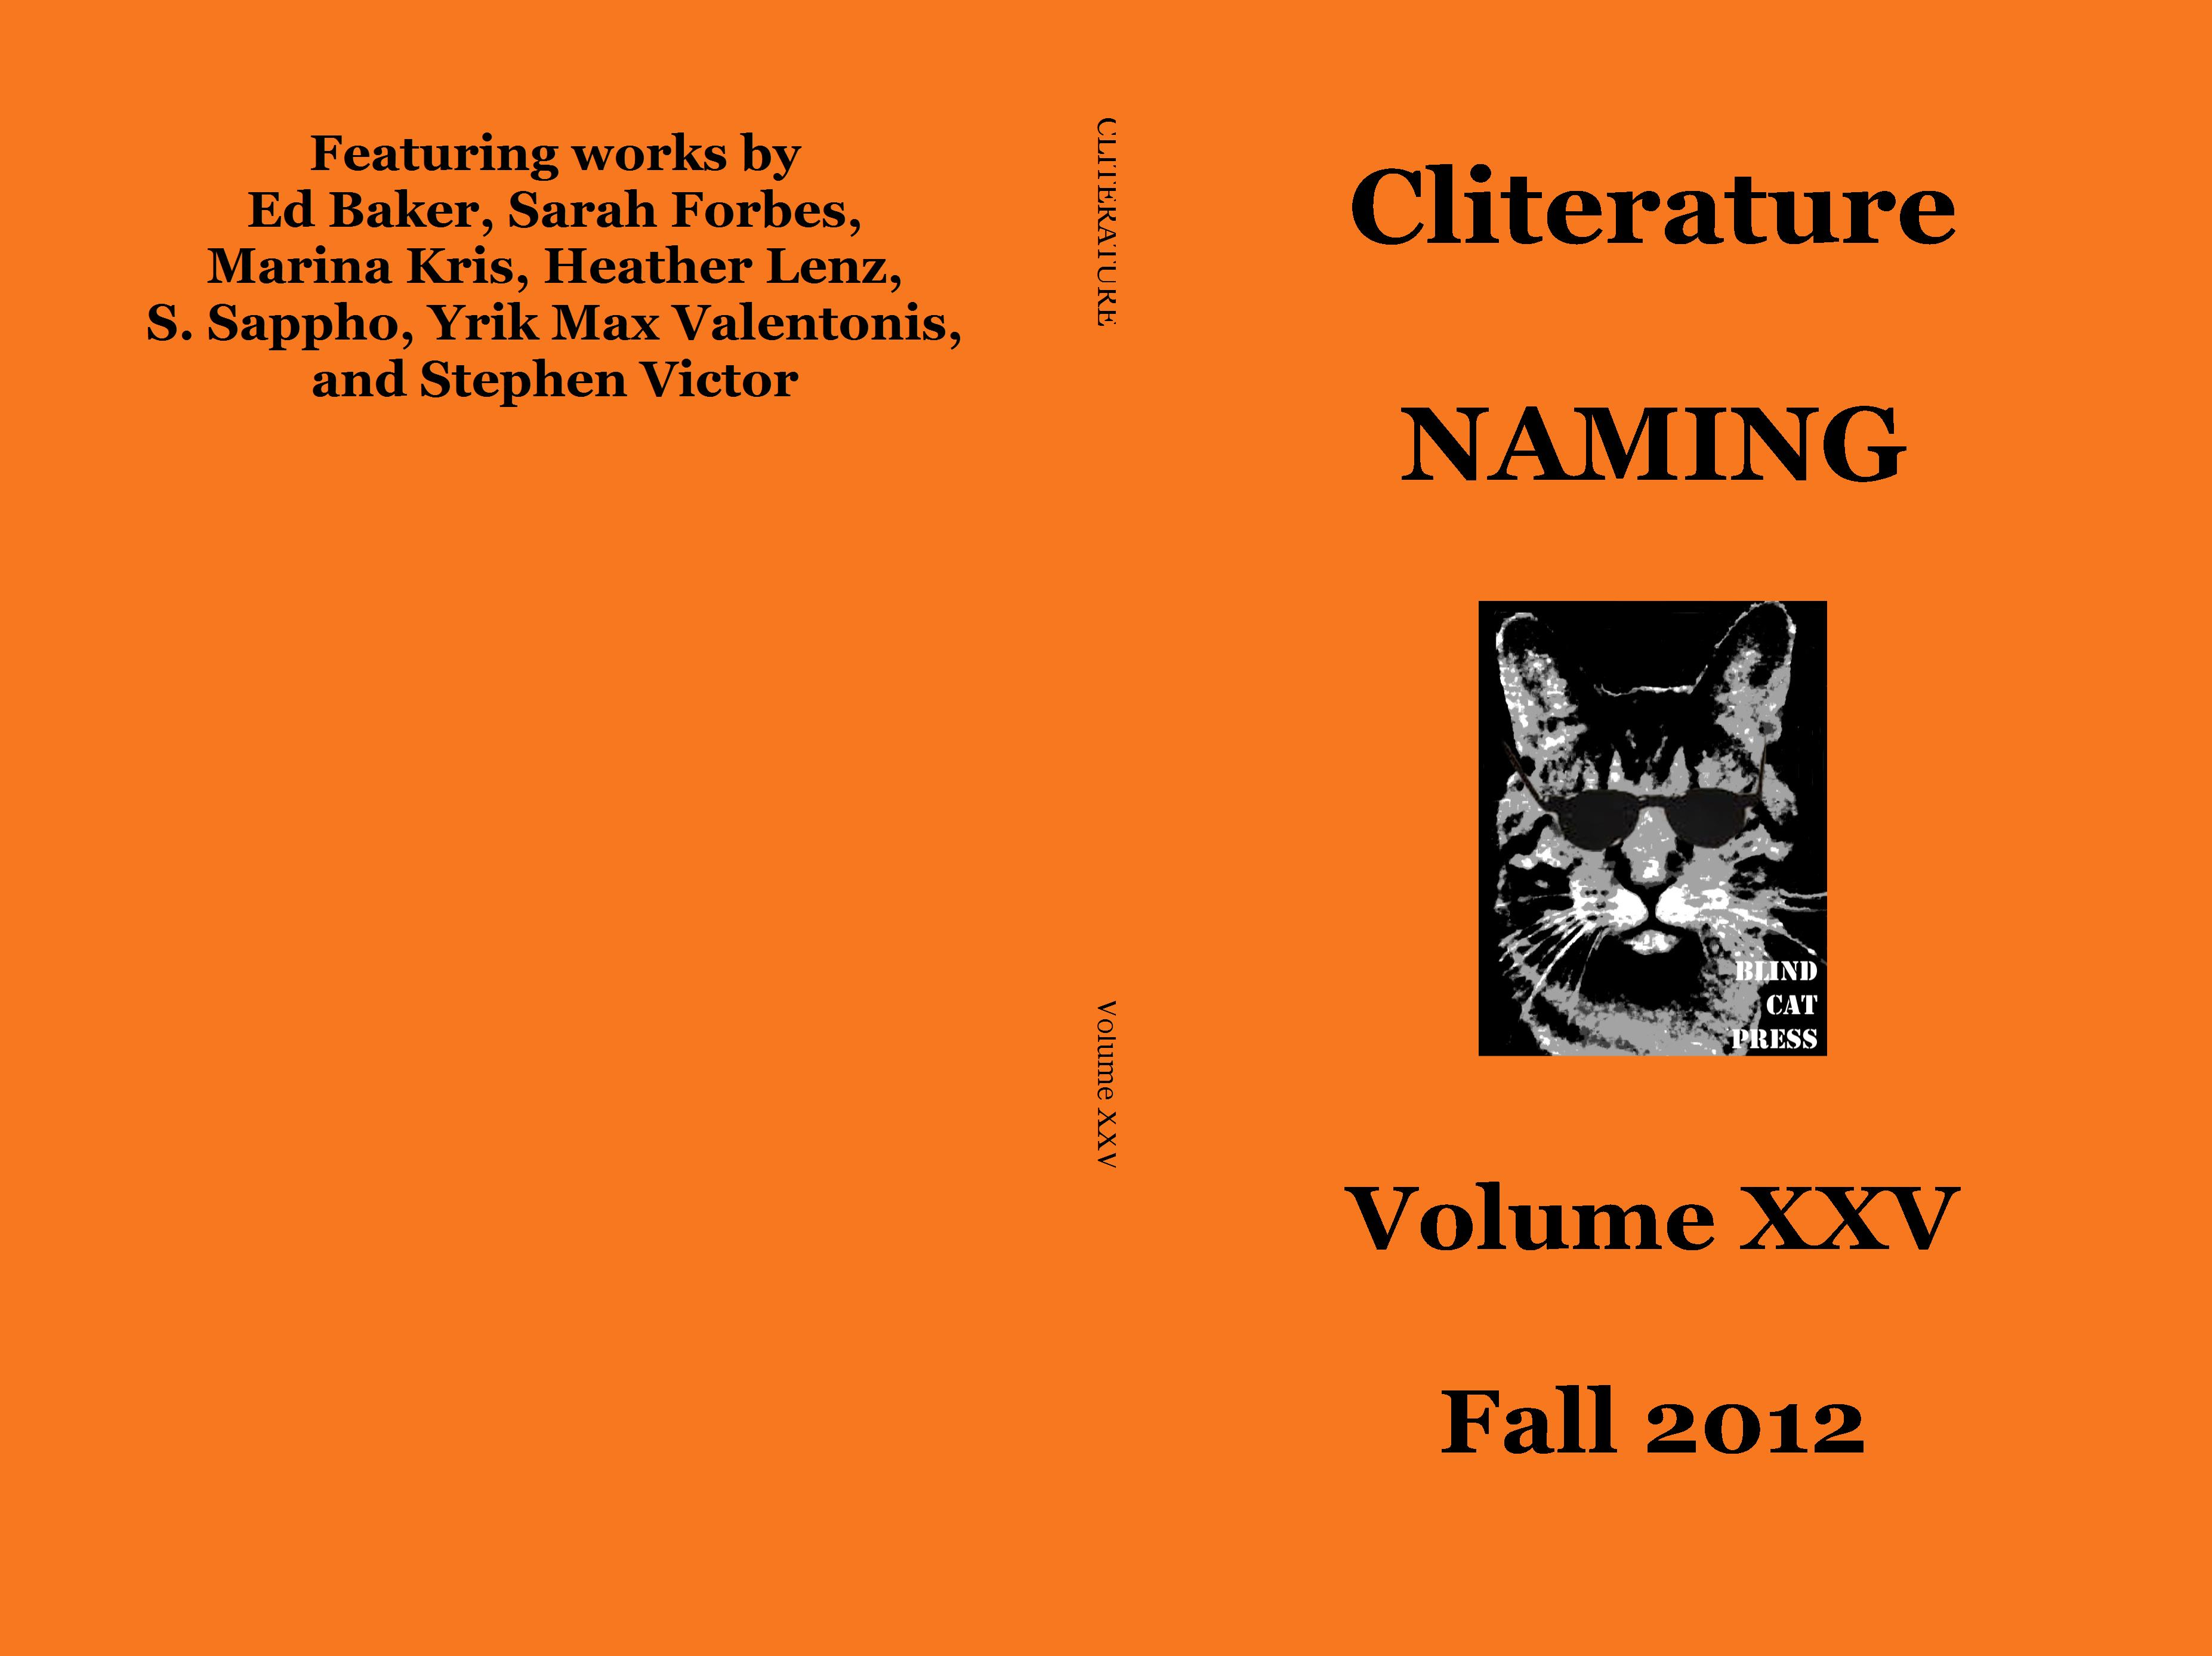 Cliterature NAMING cover image